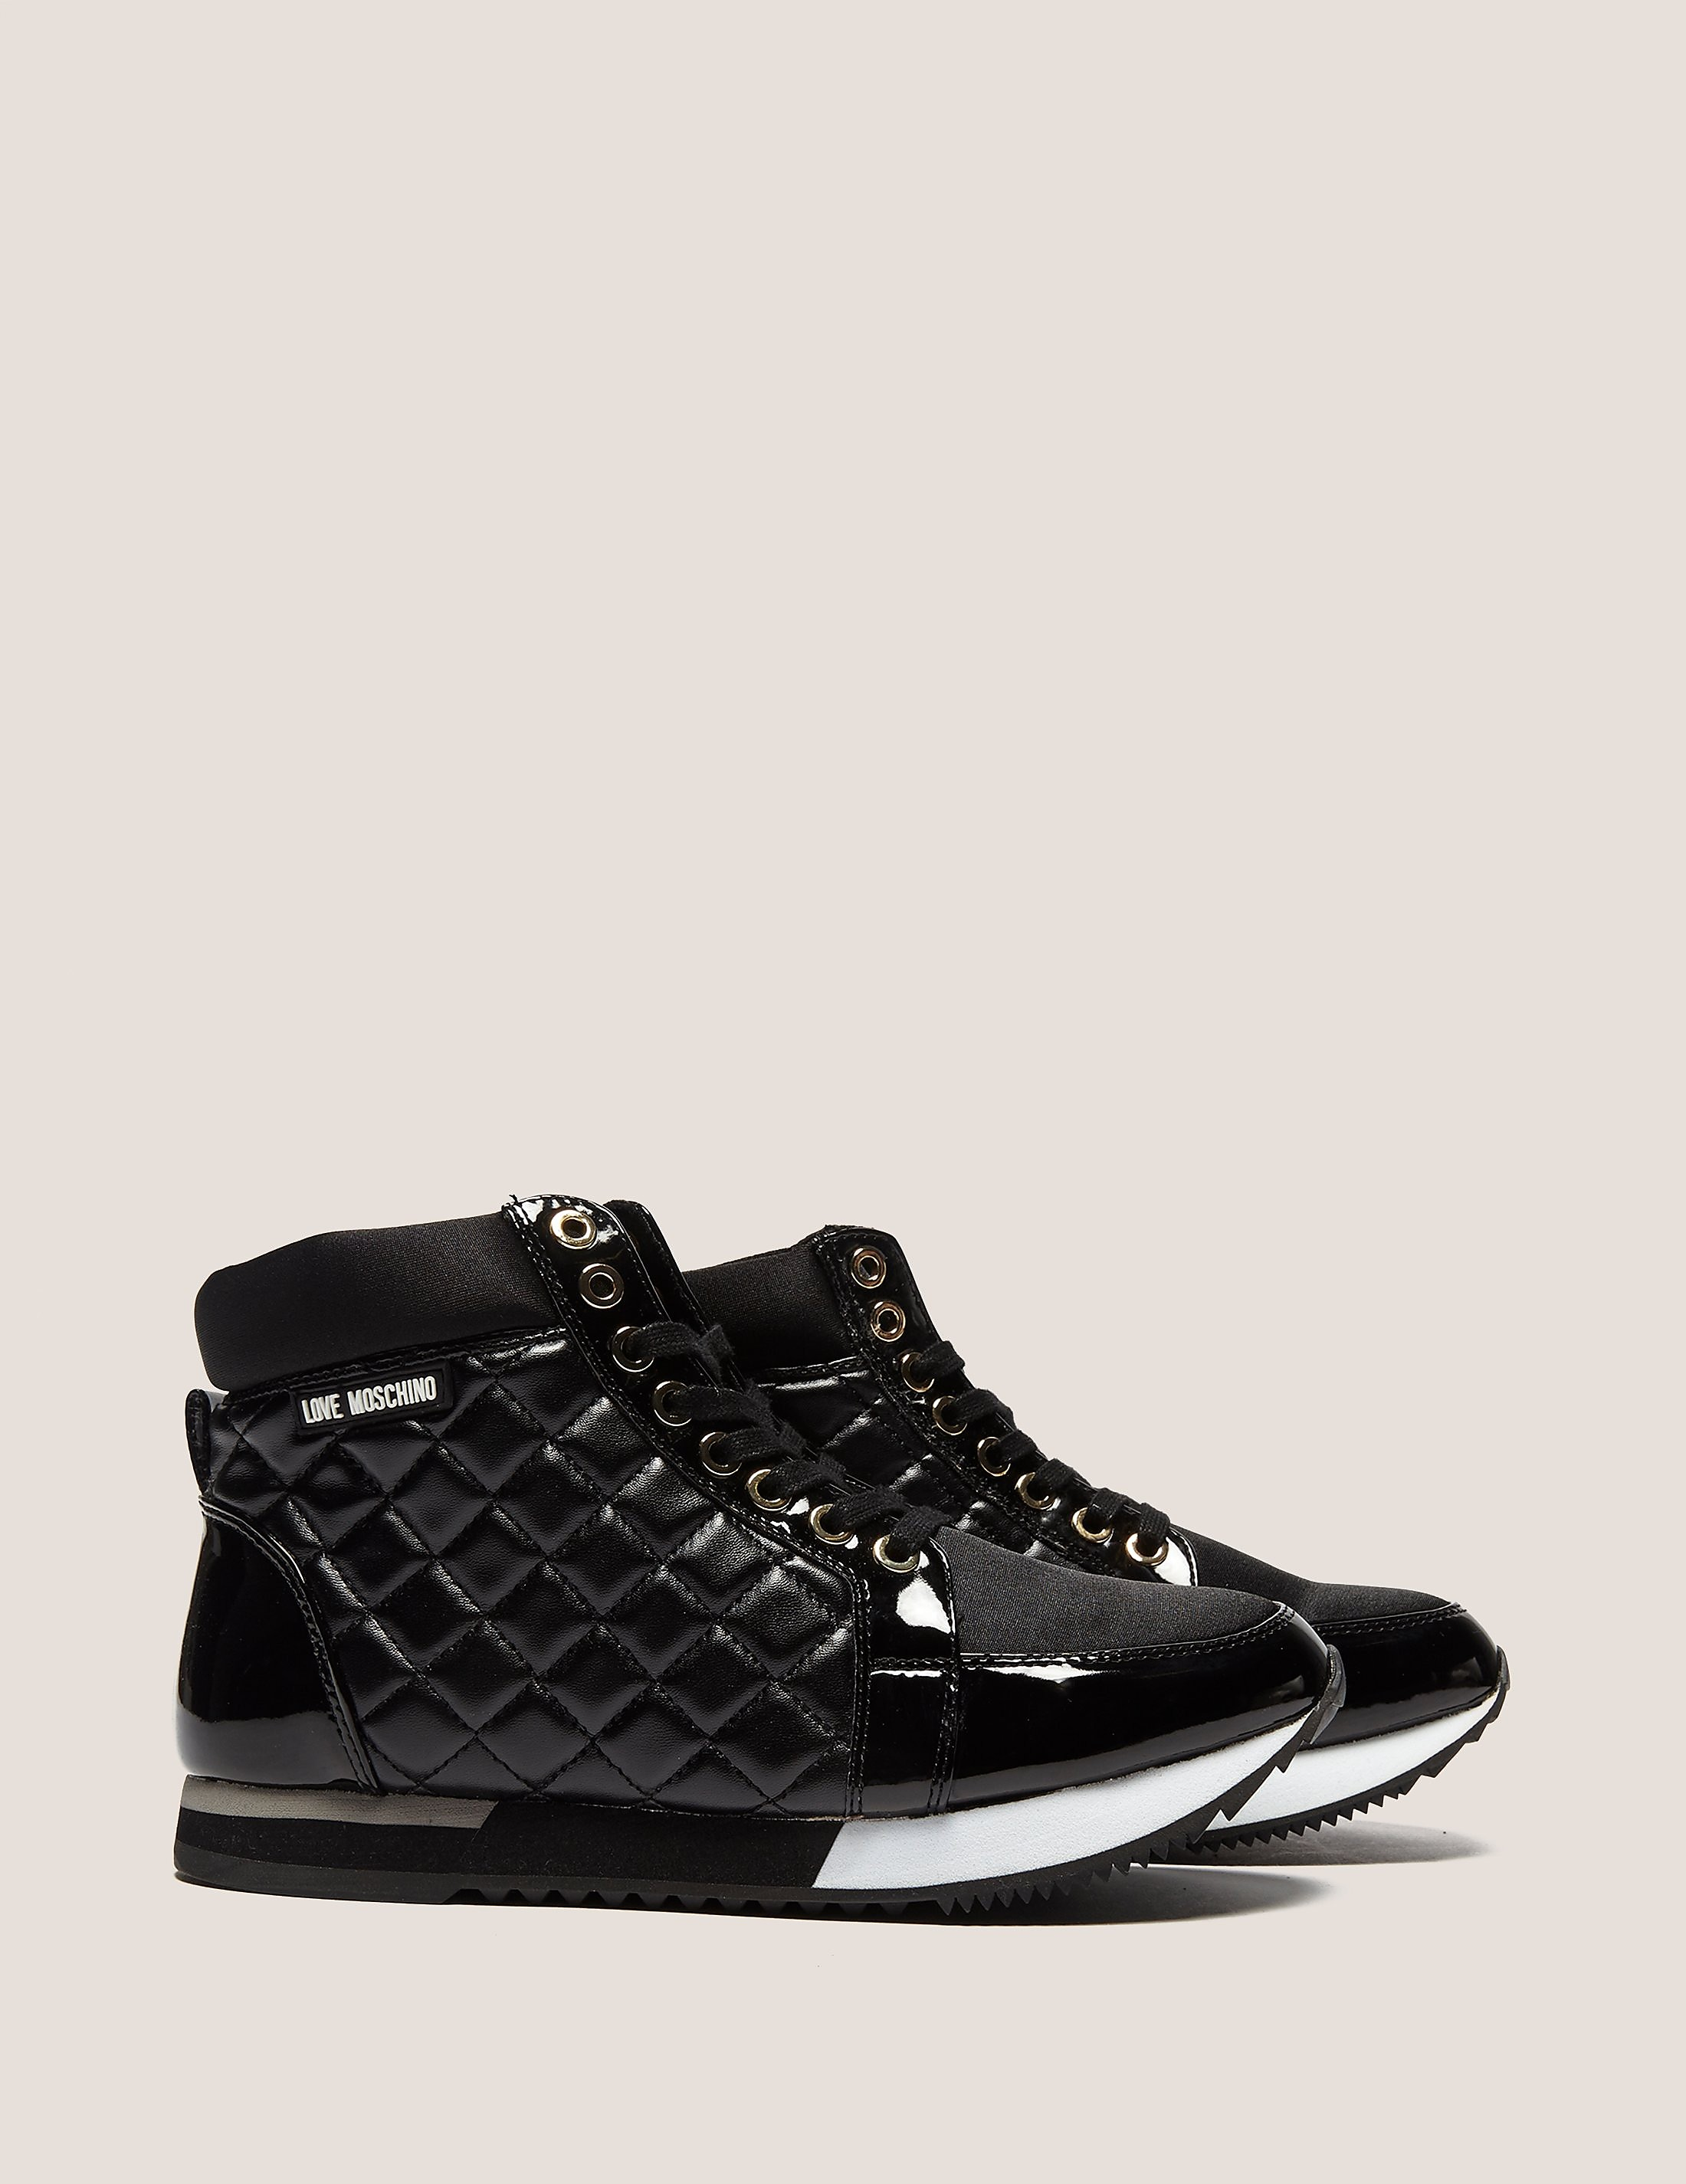 Love Moschino Qulited High Top